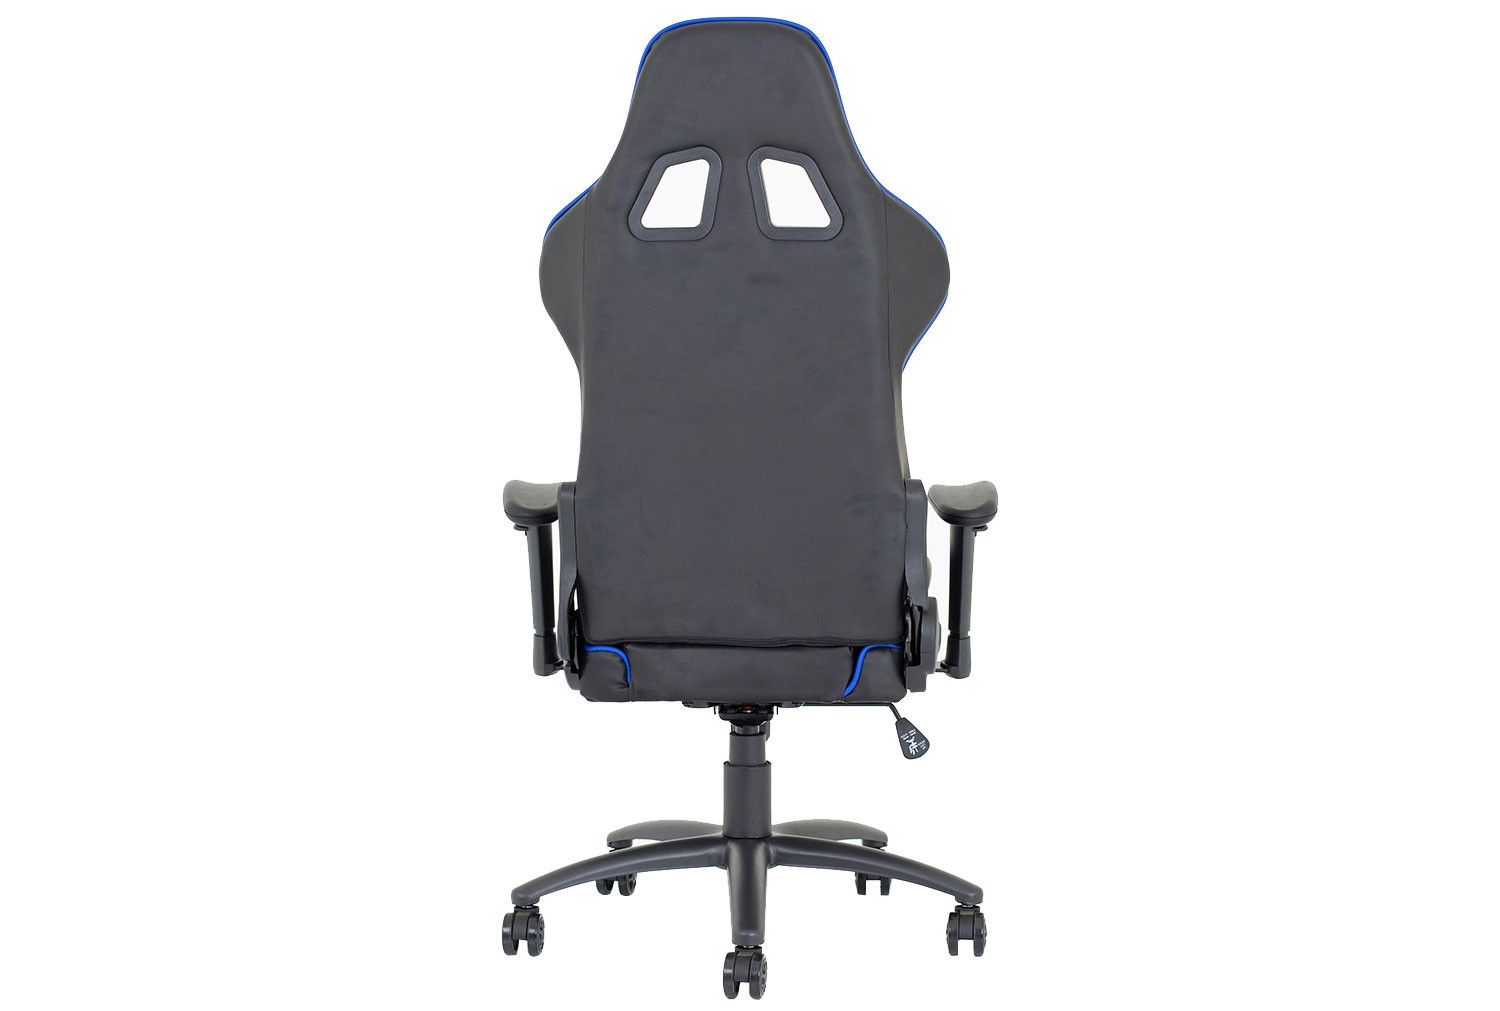 Phenomenal Hamilton Executive Bonded Leather Racing Chair Pdpeps Interior Chair Design Pdpepsorg